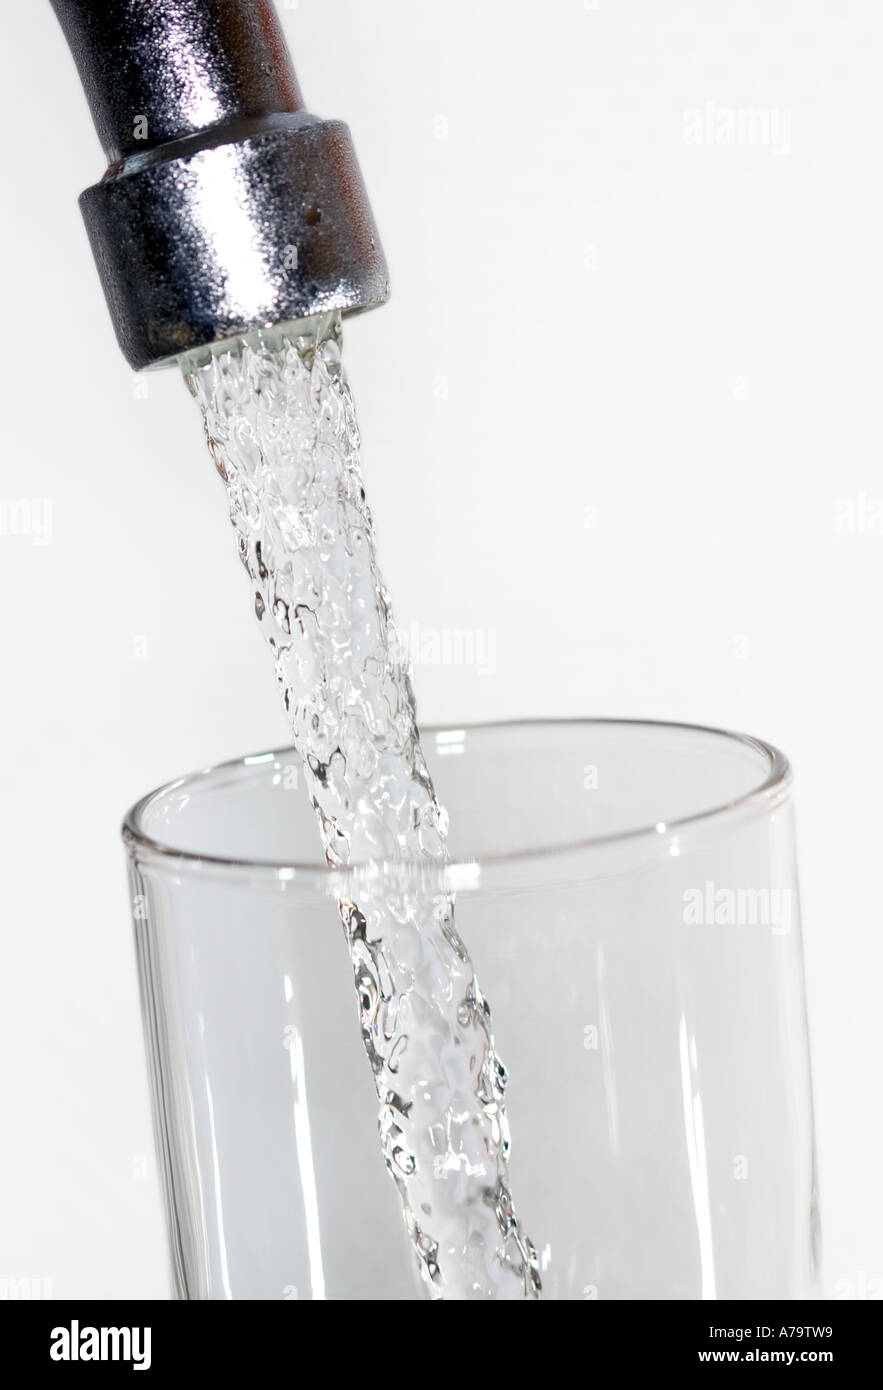 fresh water running from tap faucet into glass - Stock Image